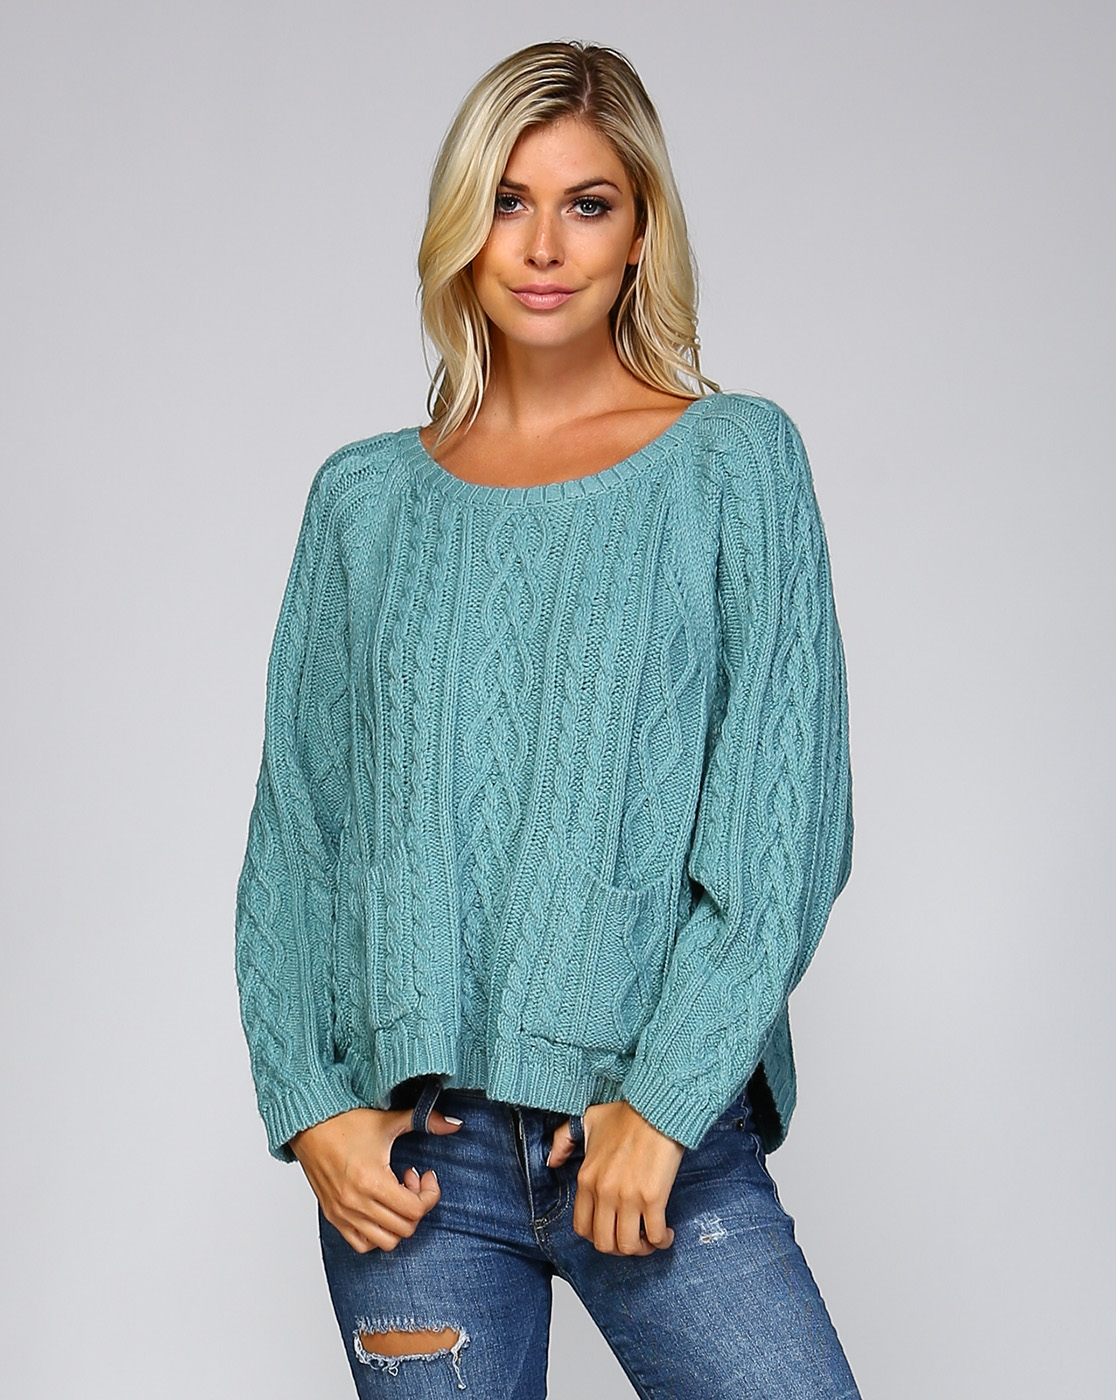 CABLE KNIT BATWING SWEATER - orangeshine.com